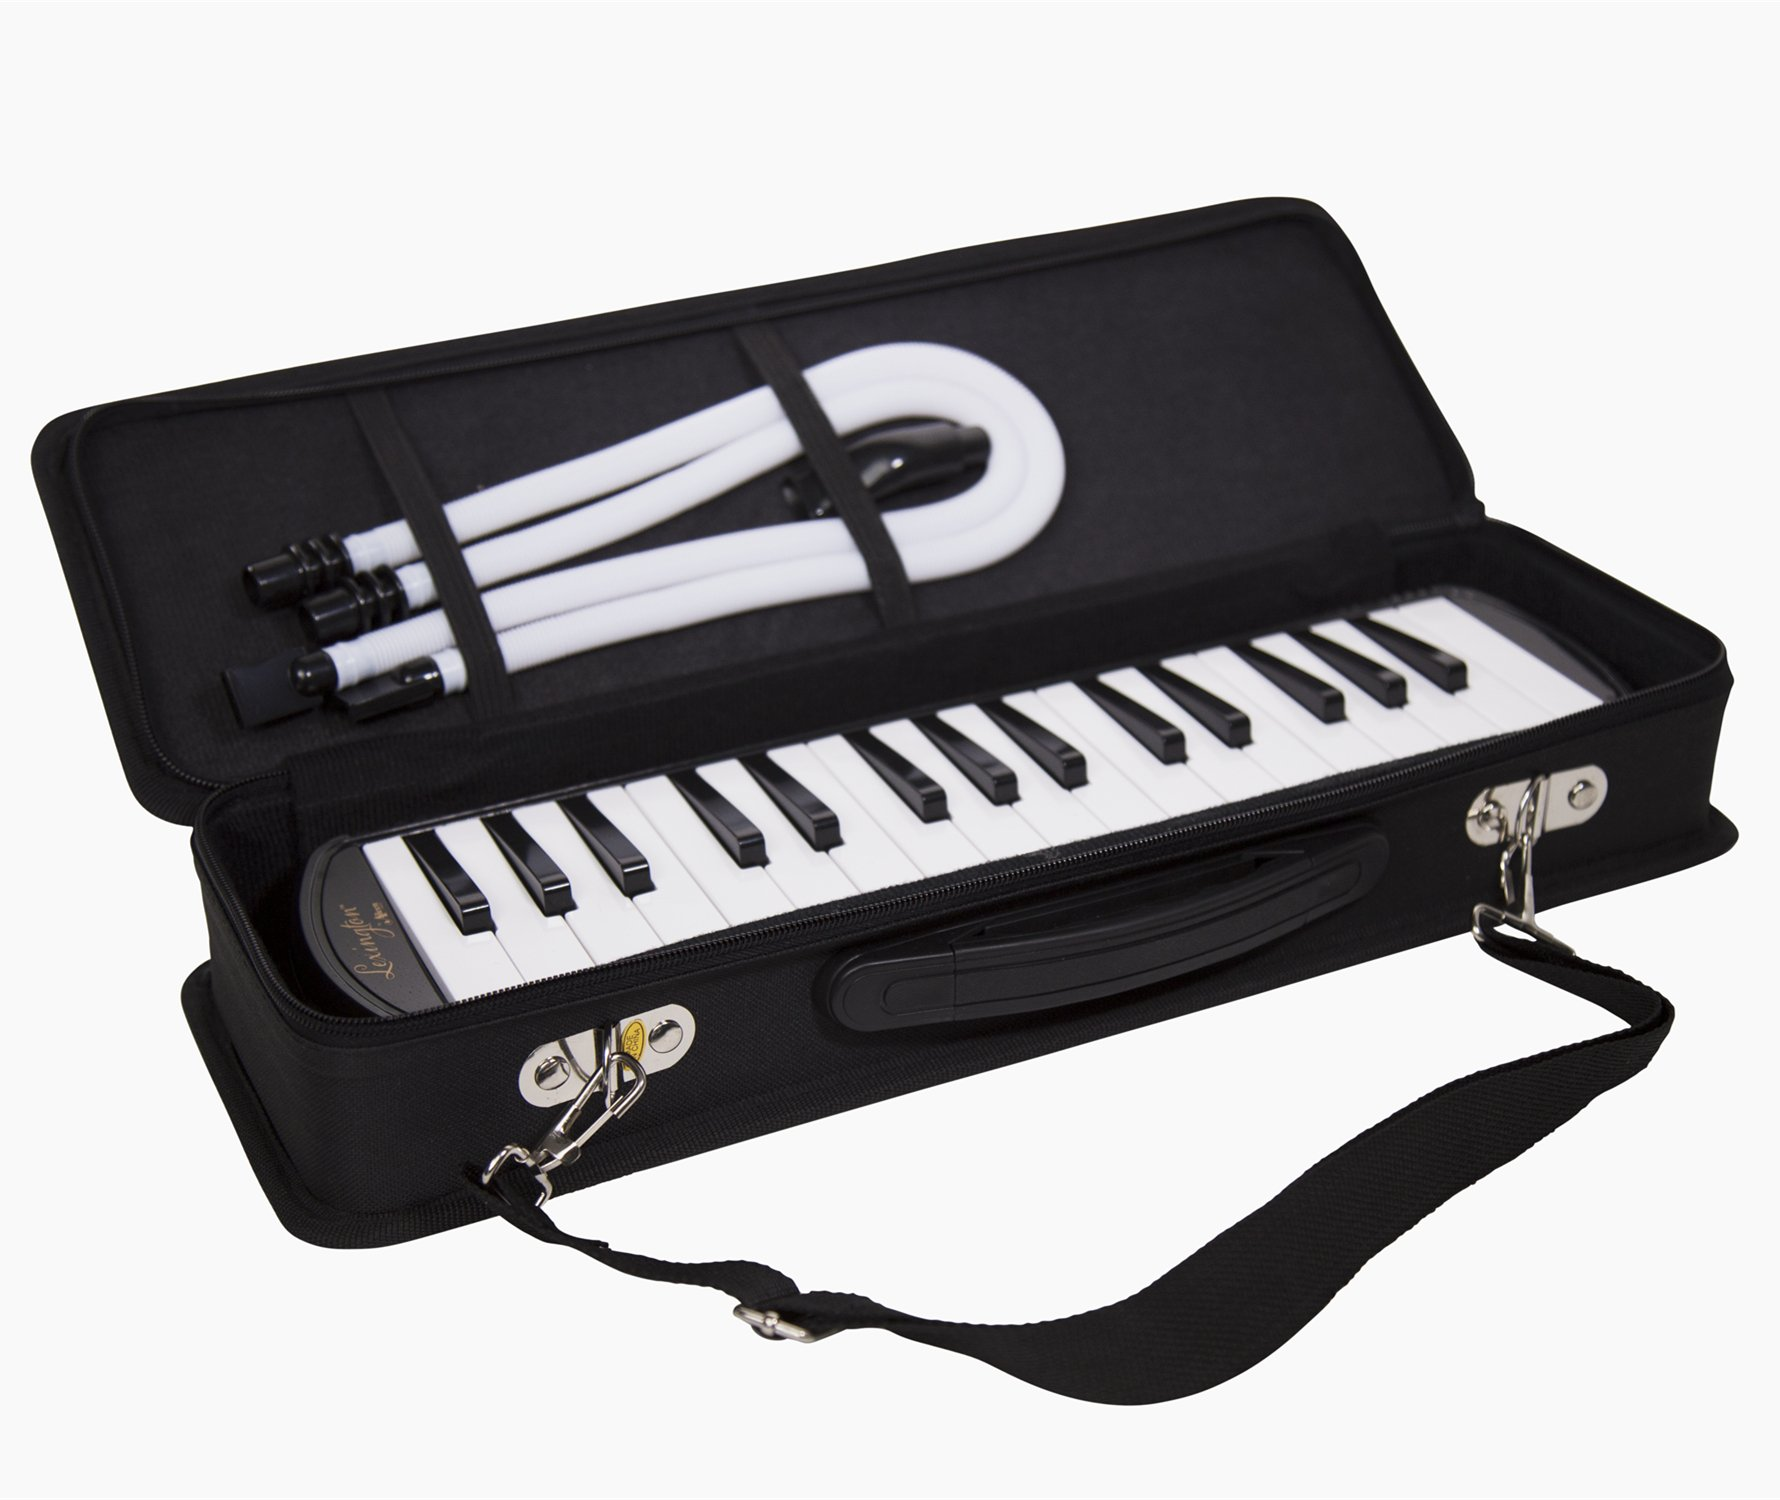 32 Piano Keys Melodica Made of Bronze Base and Reed, Package Includes 1 Carrying Case,1 Short, 2 Long Mouthpieces by Aileen (Image #3)